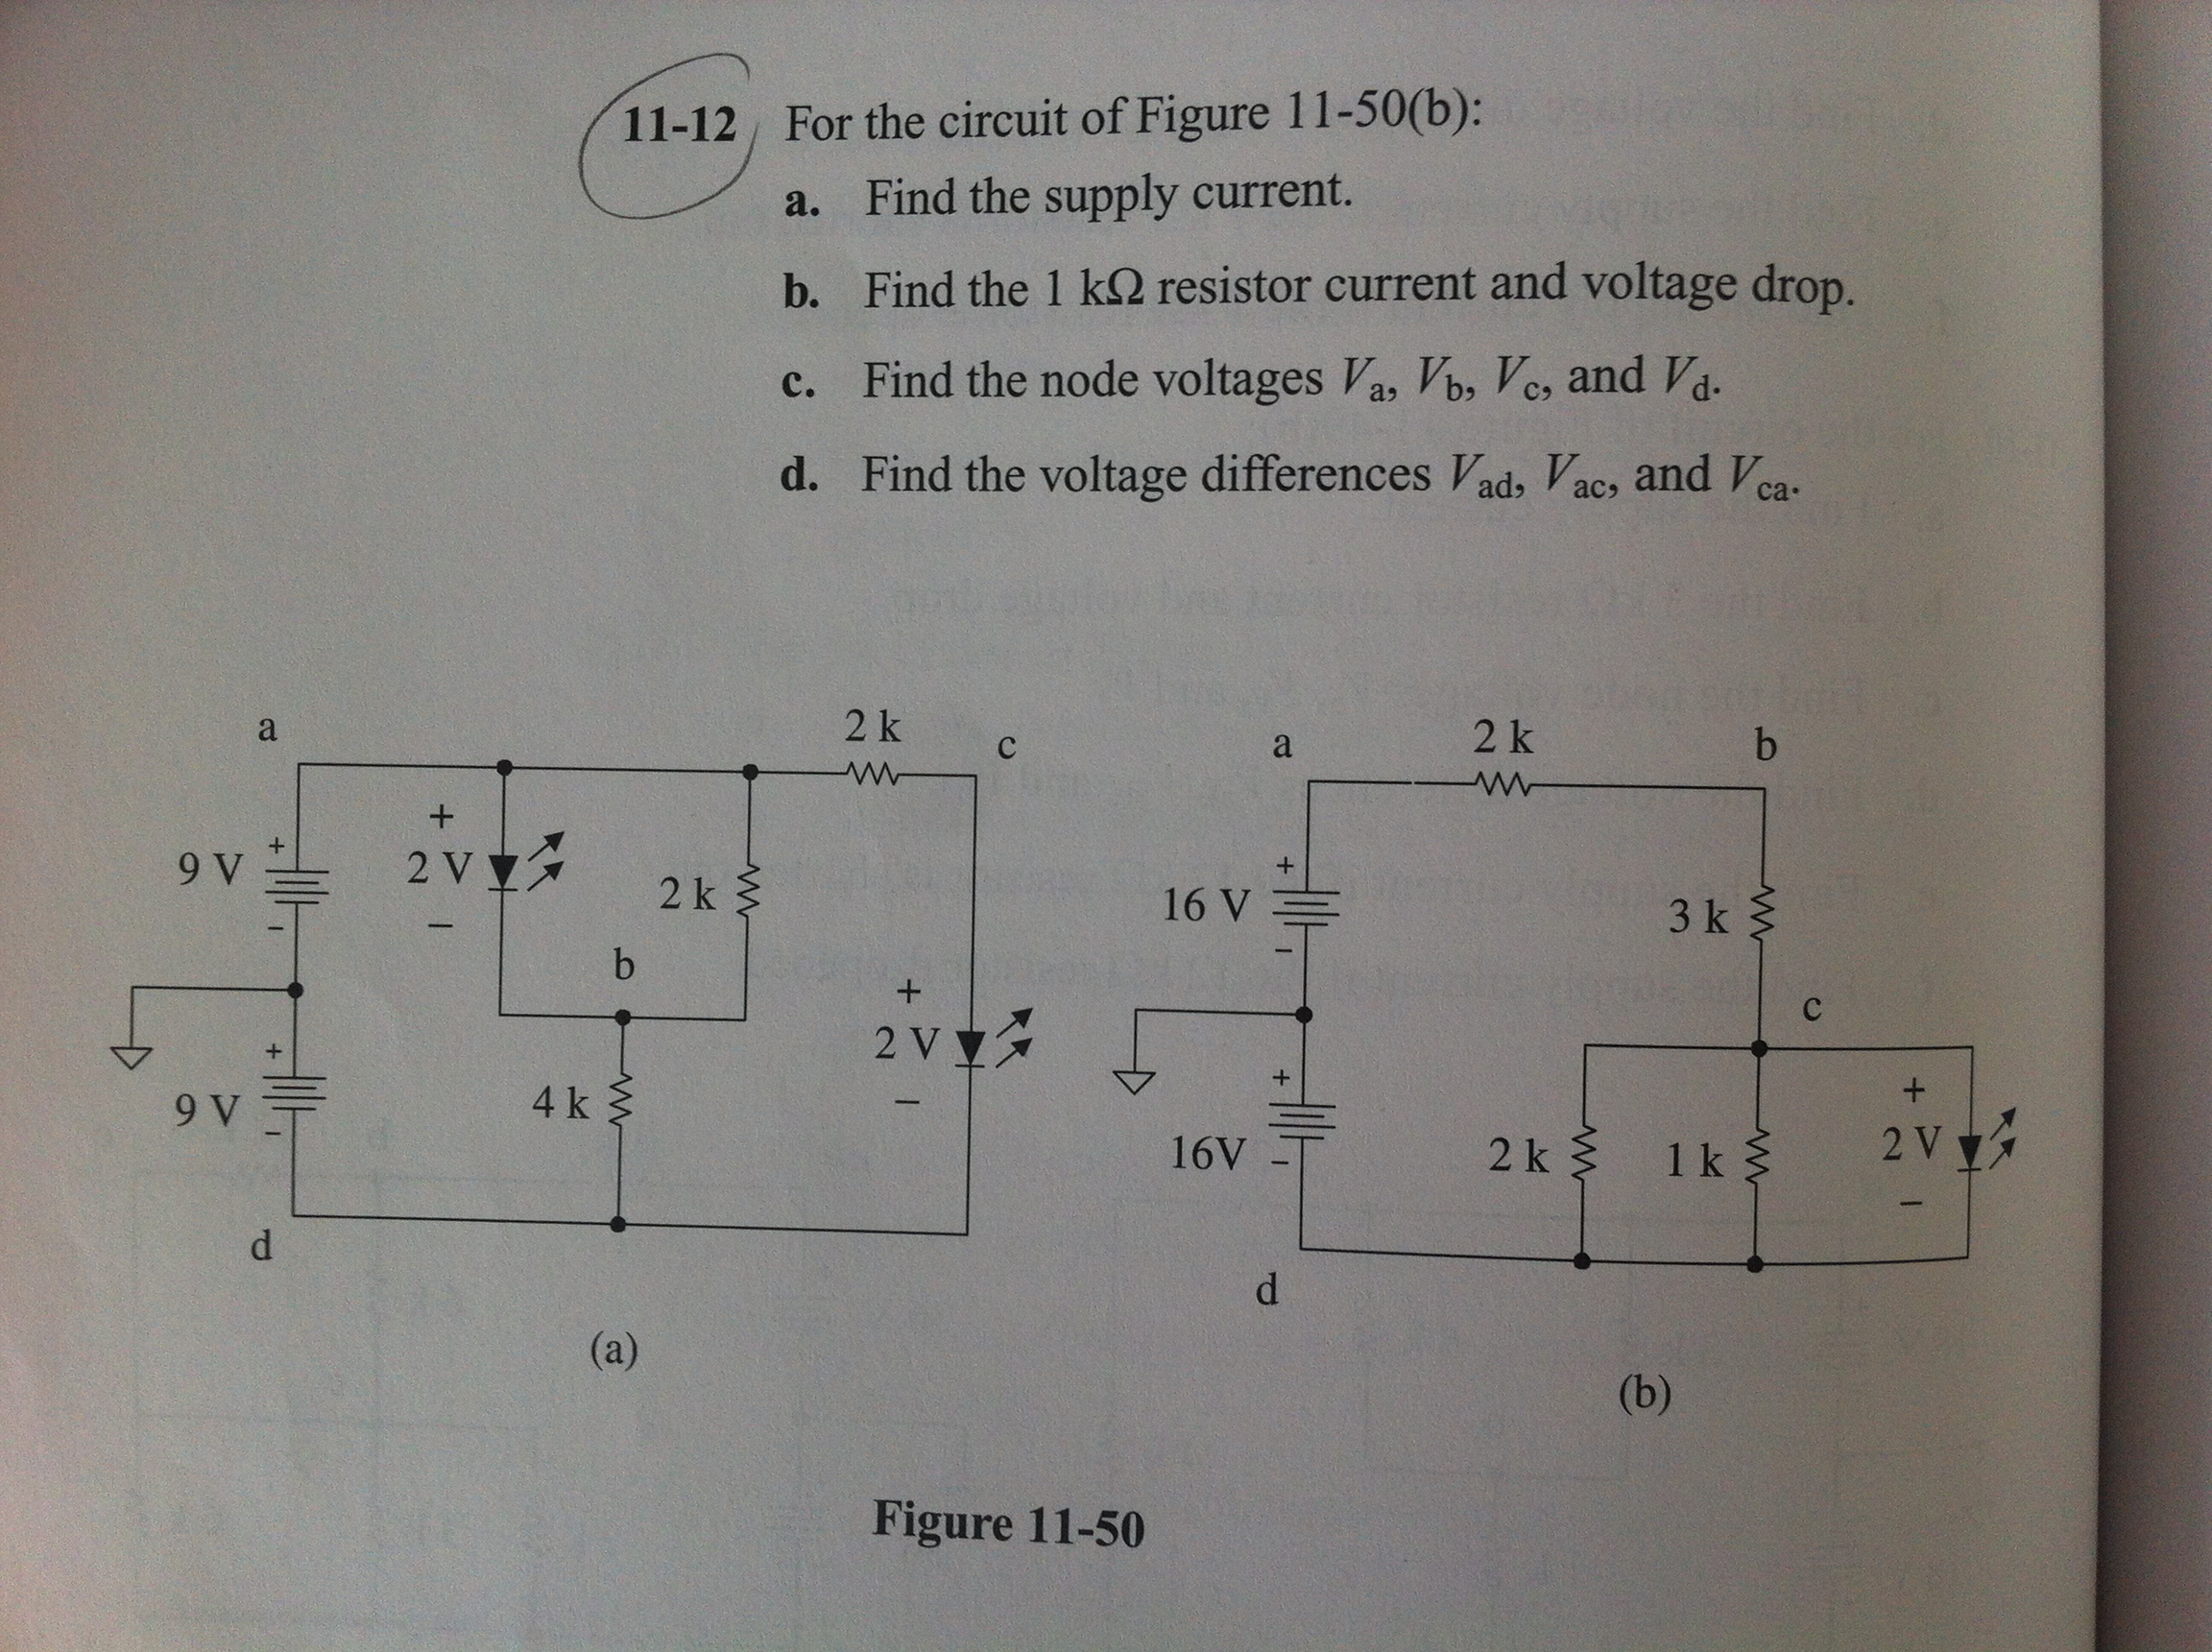 in the picture below there is a figure 11-50 (b) t